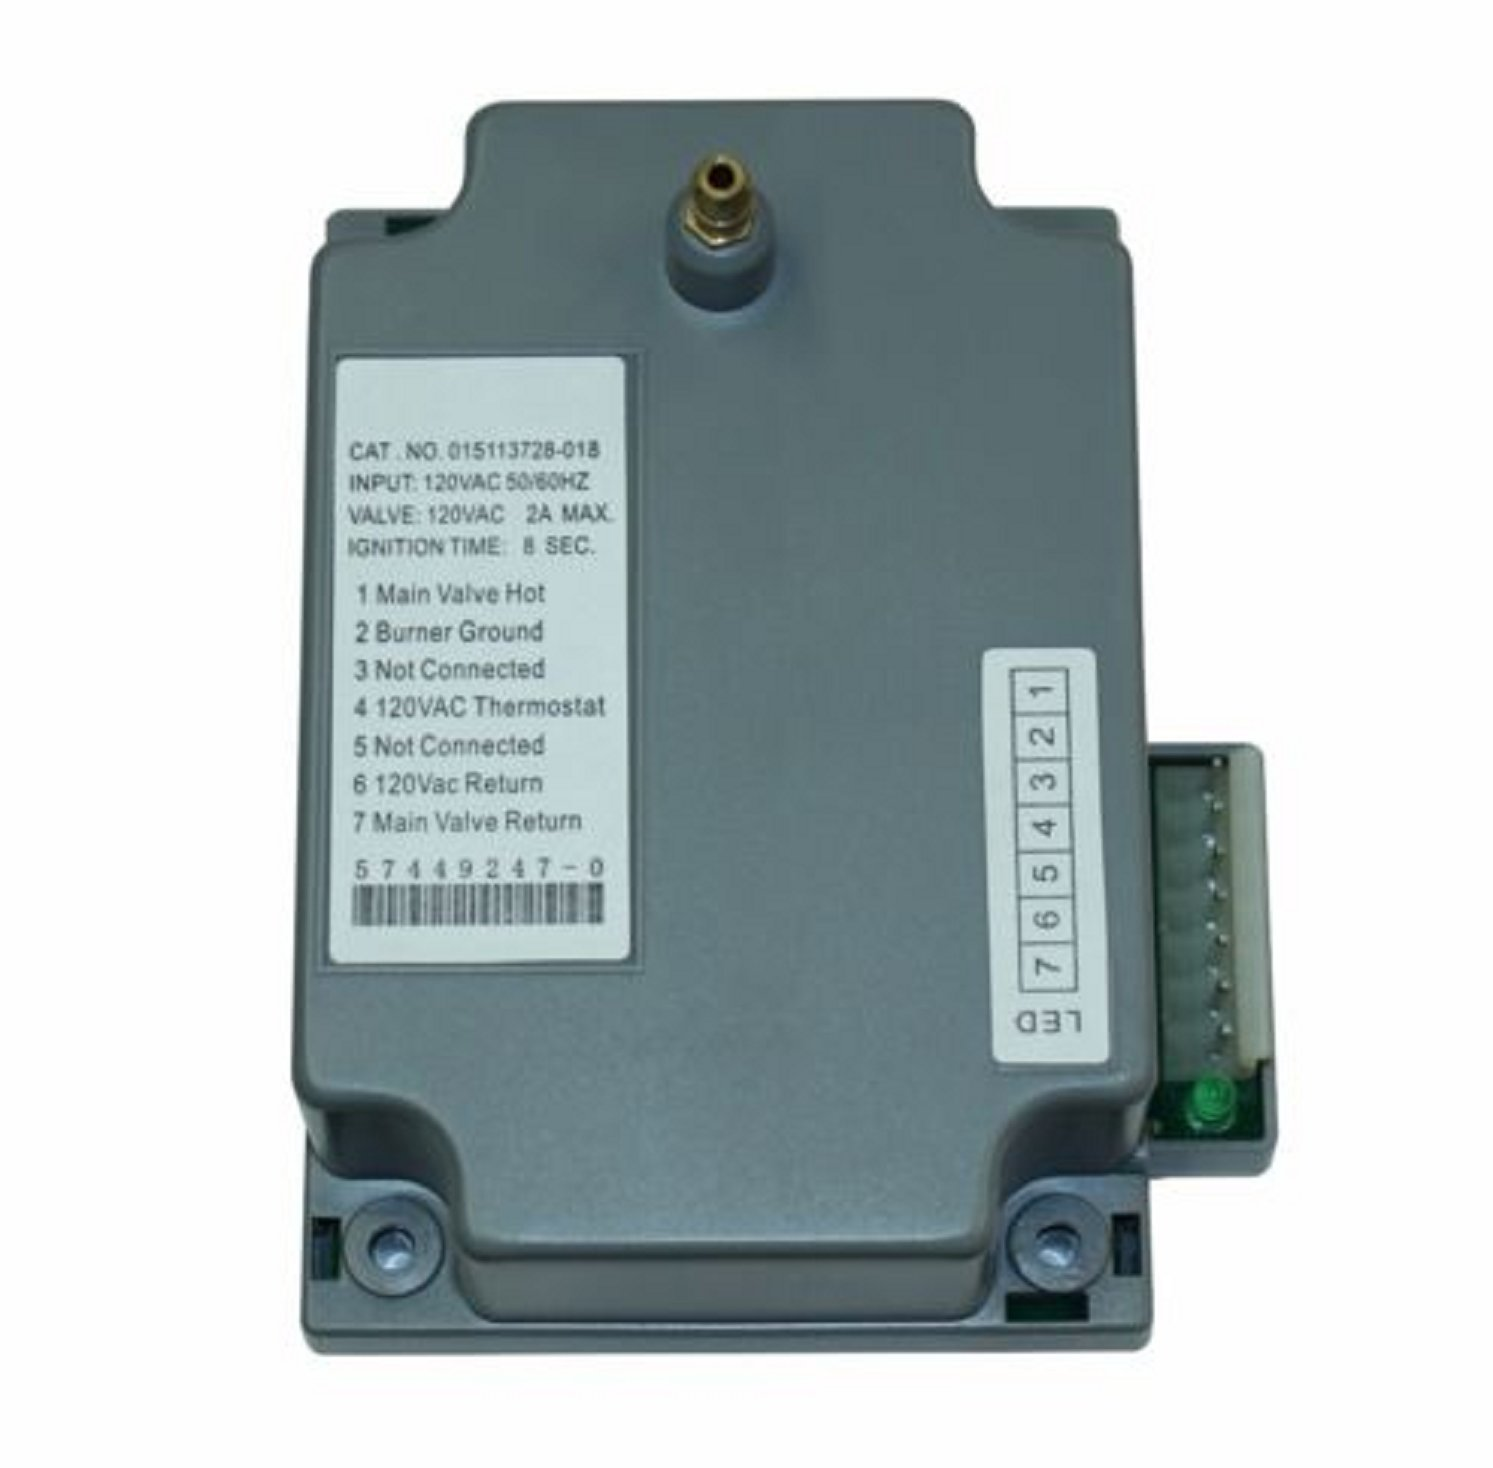 USA Premium Store Ignition Control Box for Huebsch, SQ Dryers - M406789P, M406881, M406934P